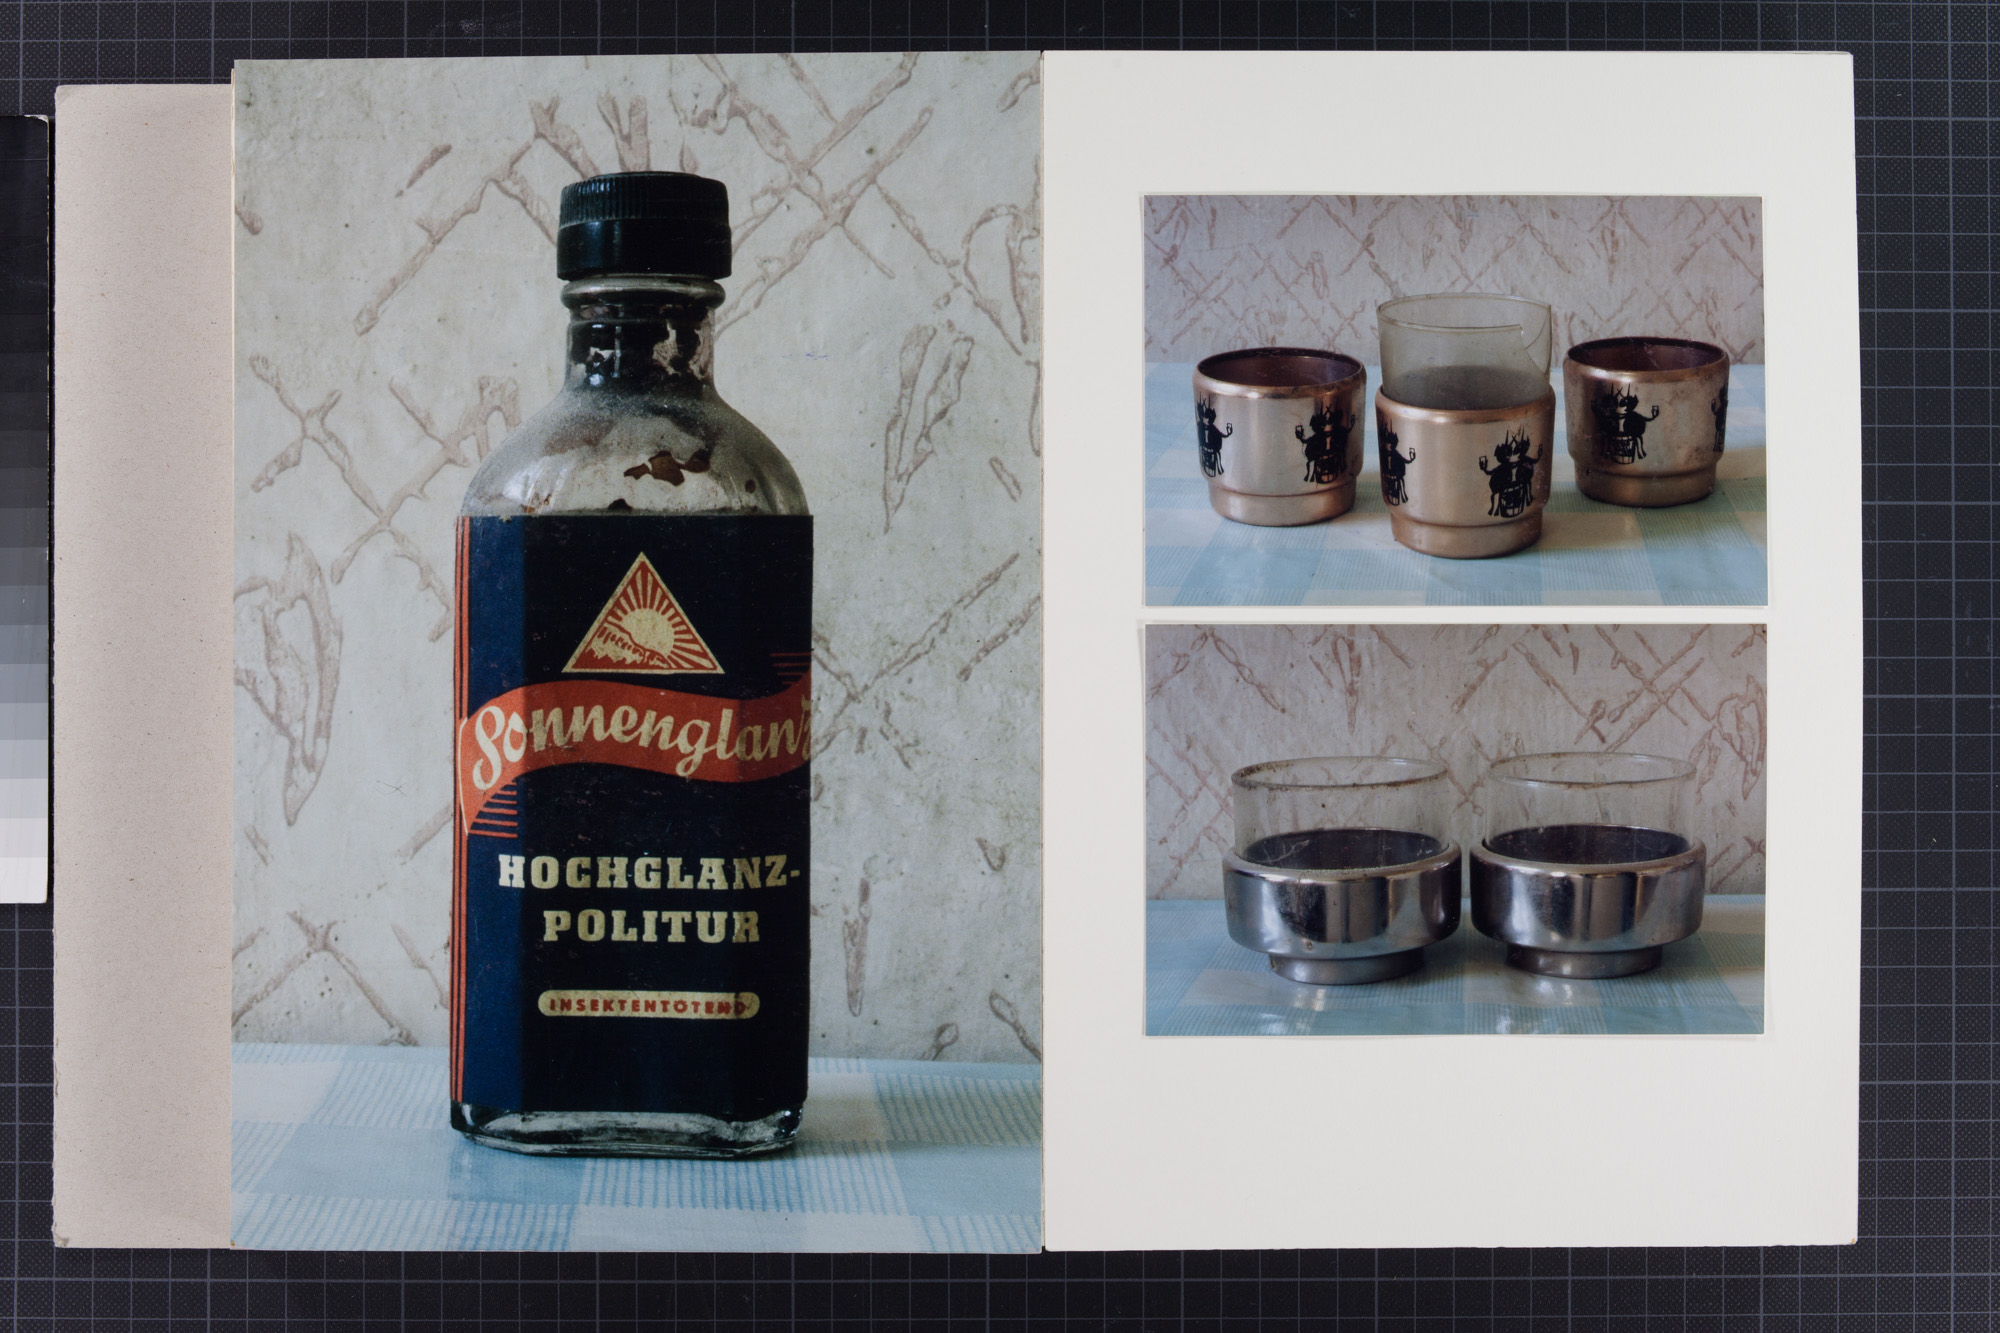 "Three color photographs on an album page show, respectively, a glass bottle of liquid polish labeled ""Sonnenglanz,"" at left; at top right three metal tea glass holders with a black design, the one in the center with a glass in it; and at lower right two silver metal tea glass holders, both of which have glasses in them. All are placed on a light blue-and-white checkered tablecloth with a backdrop of worn-looking beige wallpaper with brown diagonal crisscross hatching."